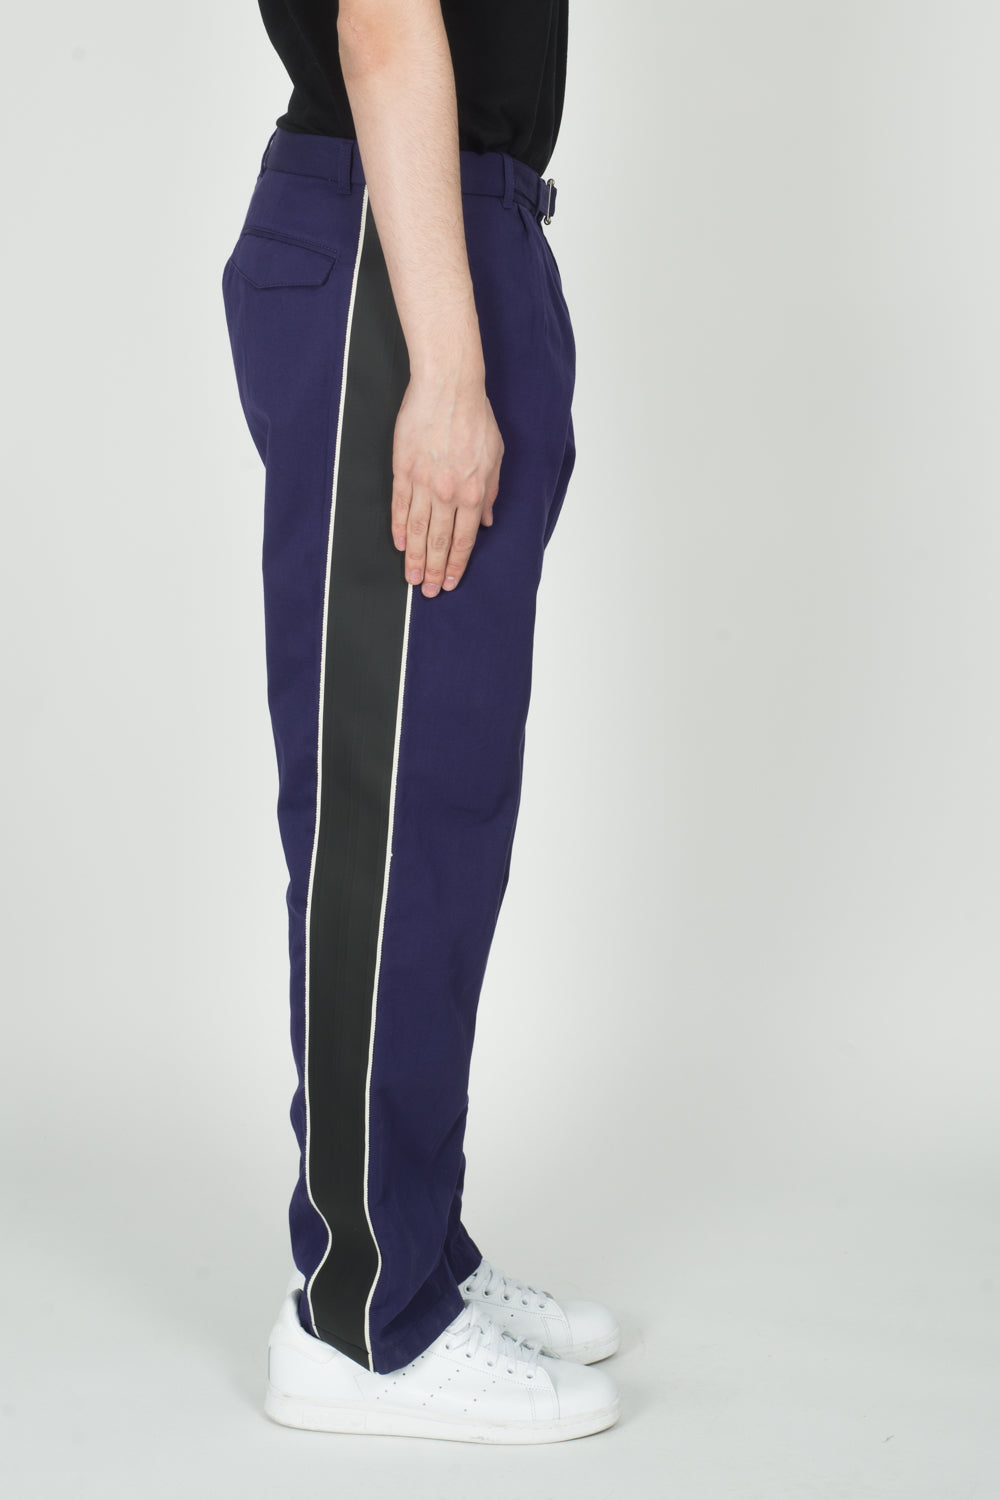 Haider Ackermann Tourmaline Casual Trousers In Violet